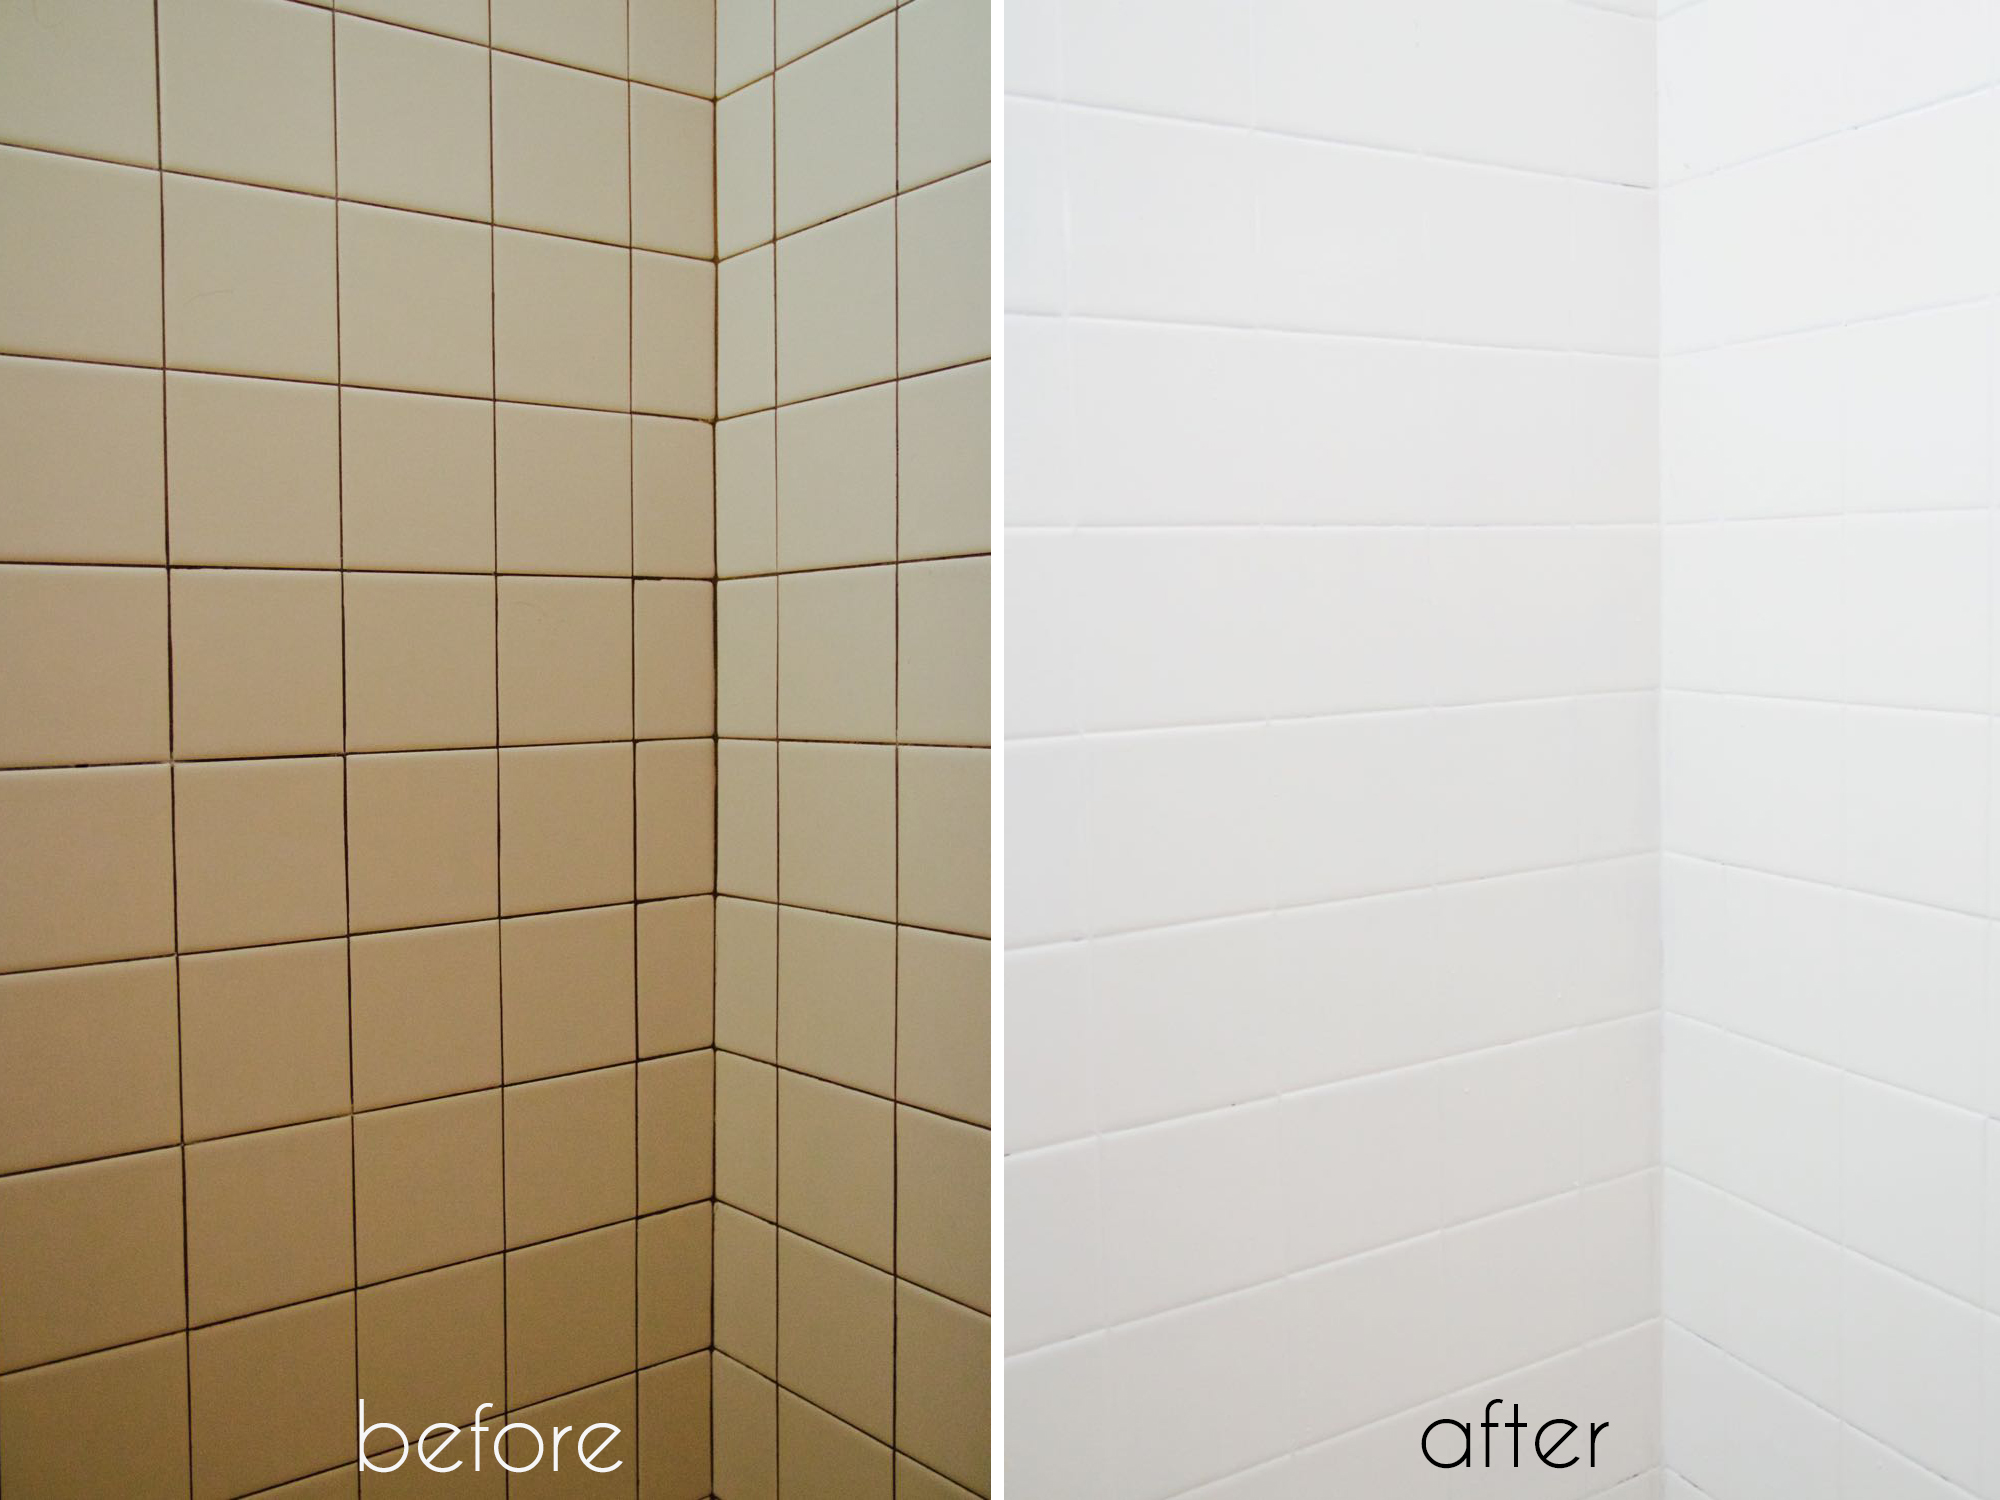 Painted tiles in bathroom -  Can You Paint Over Bathroom Tile